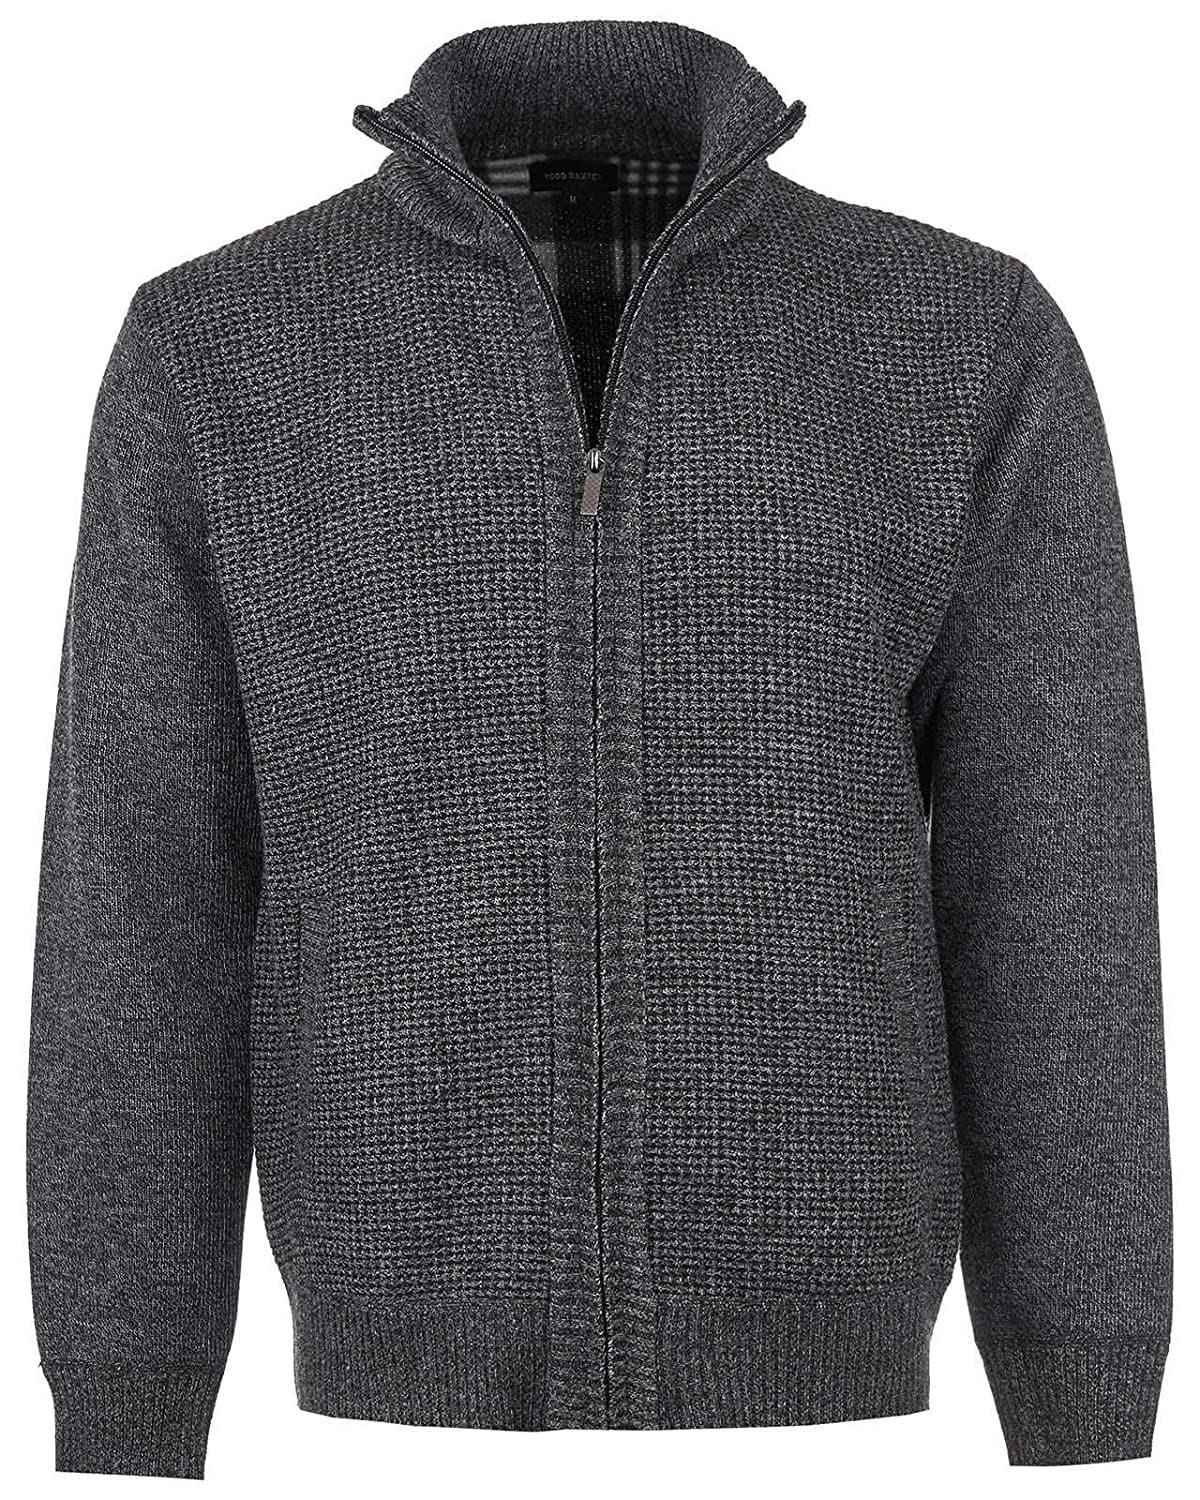 Mens Cardigan Front Zip Closure and Pockets with Inside Fleece Lined Jumper Knitted Jacket